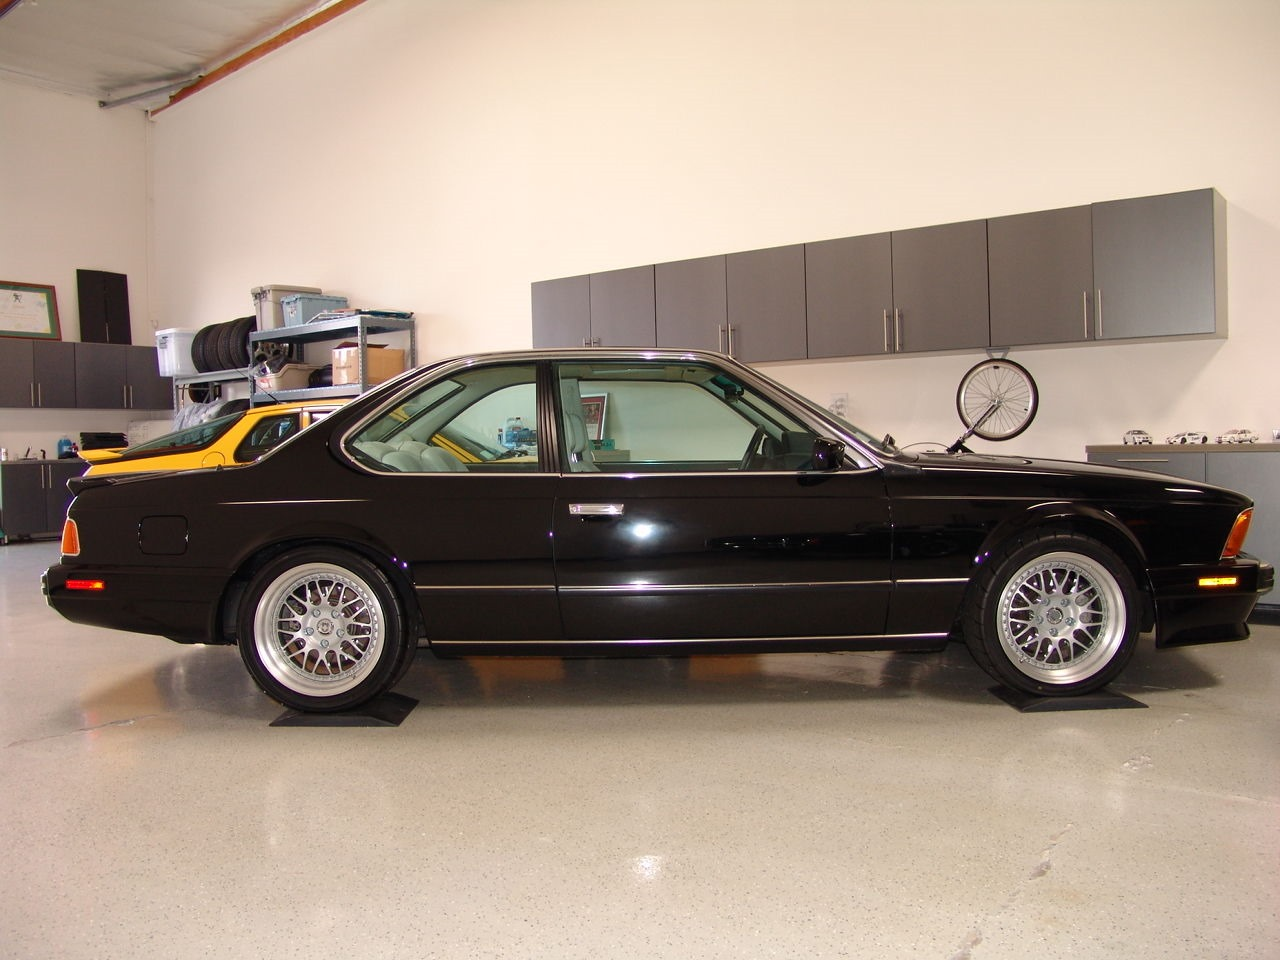 Another Rare Find A Bmw E24 M6 On Craigslist Autoevolution